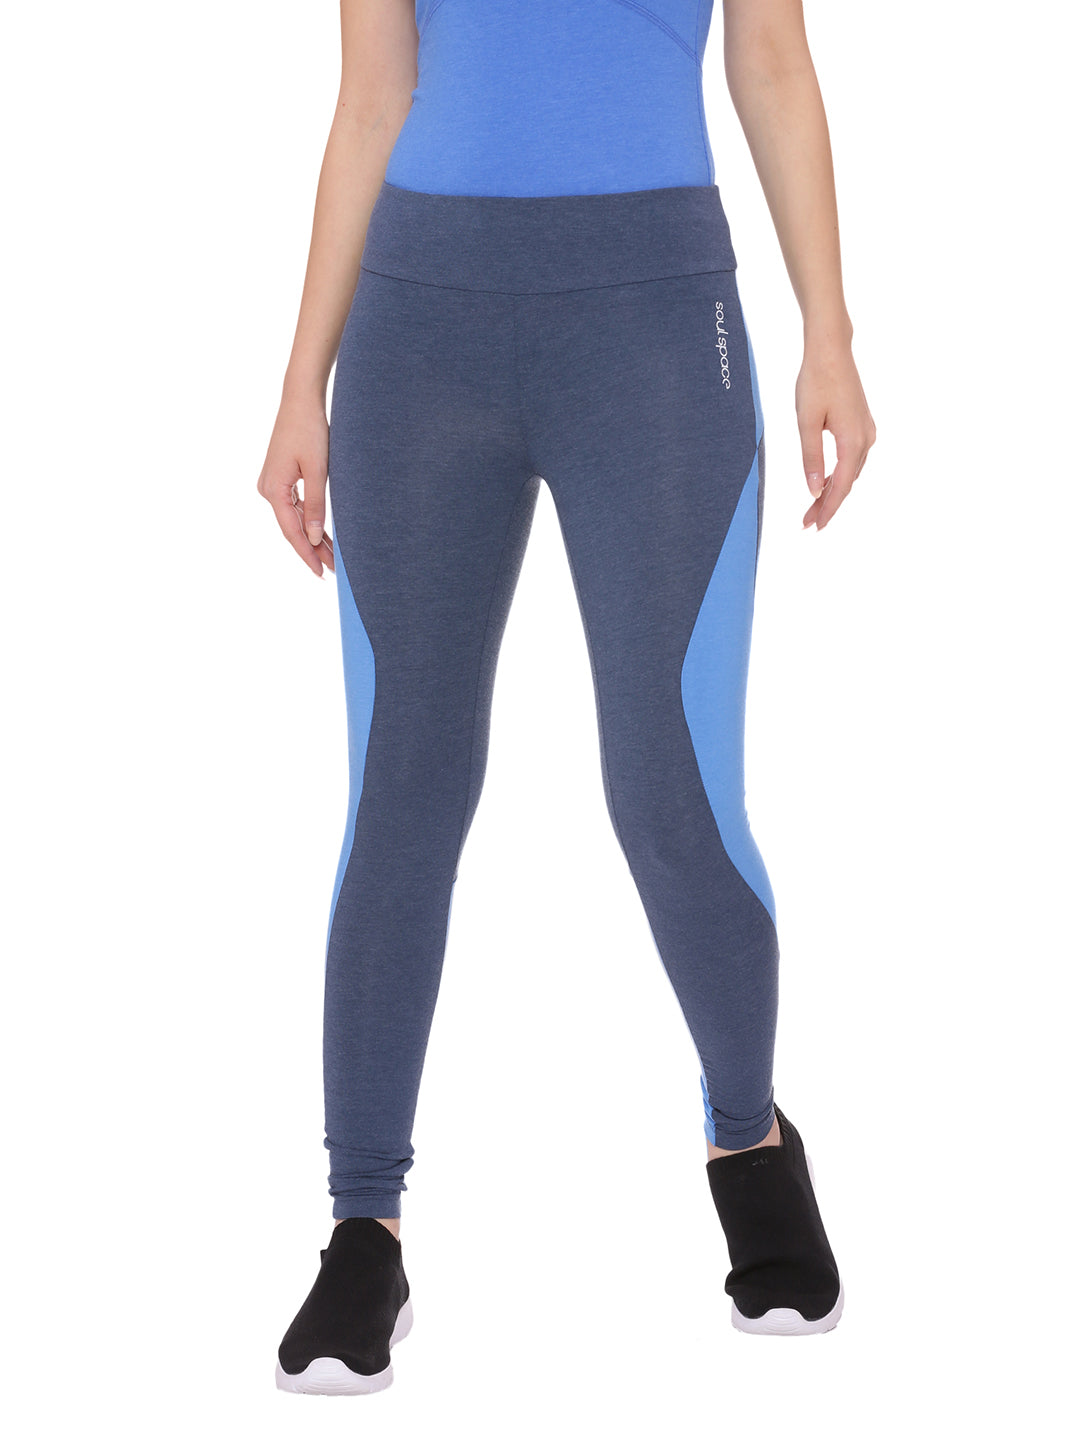 Women's organic leggings with blue accents